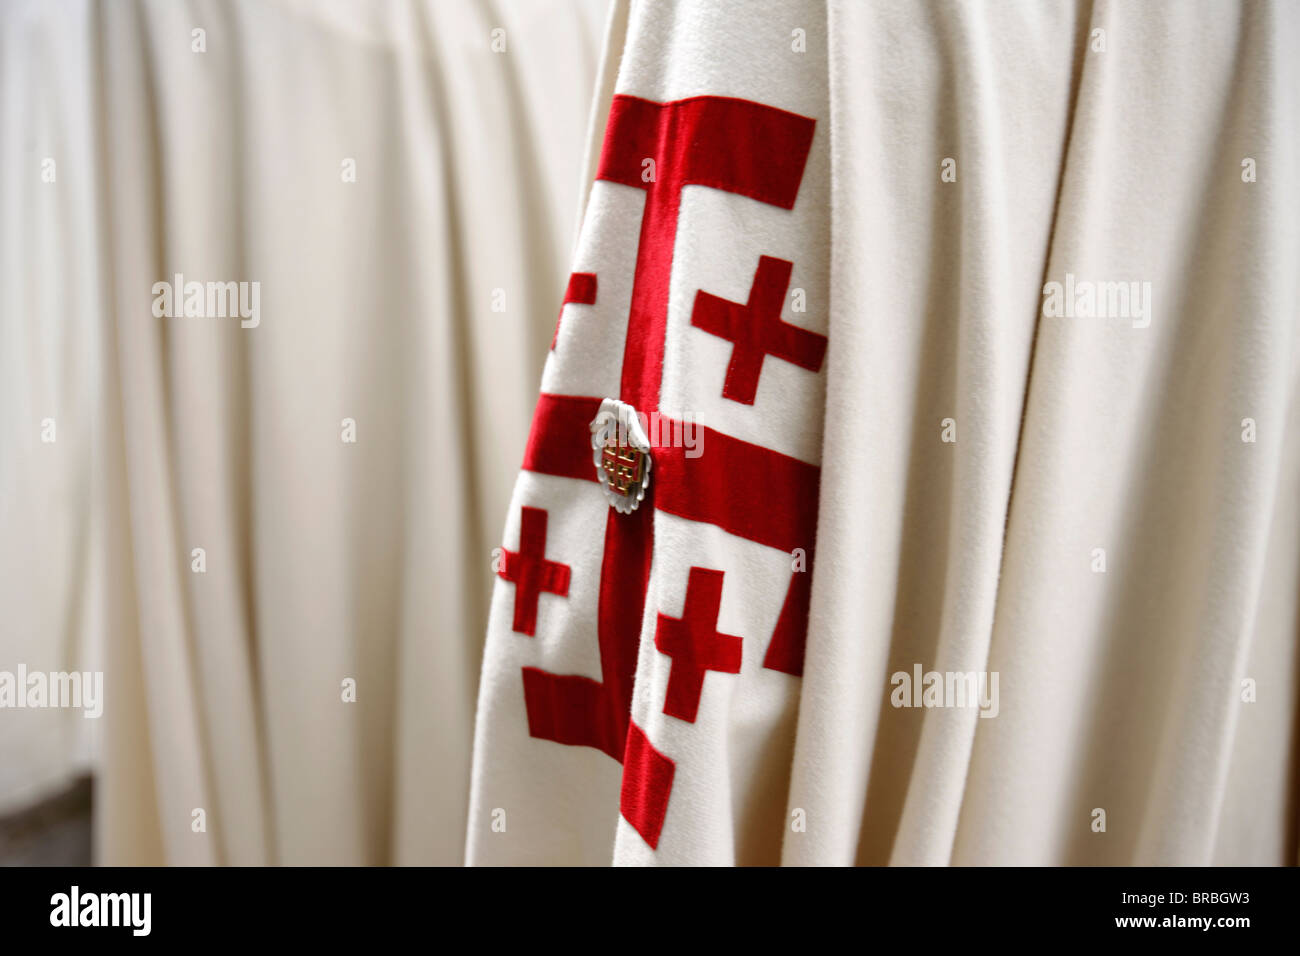 Knights of the Holy Sepulchre, Paris, France - Stock Image